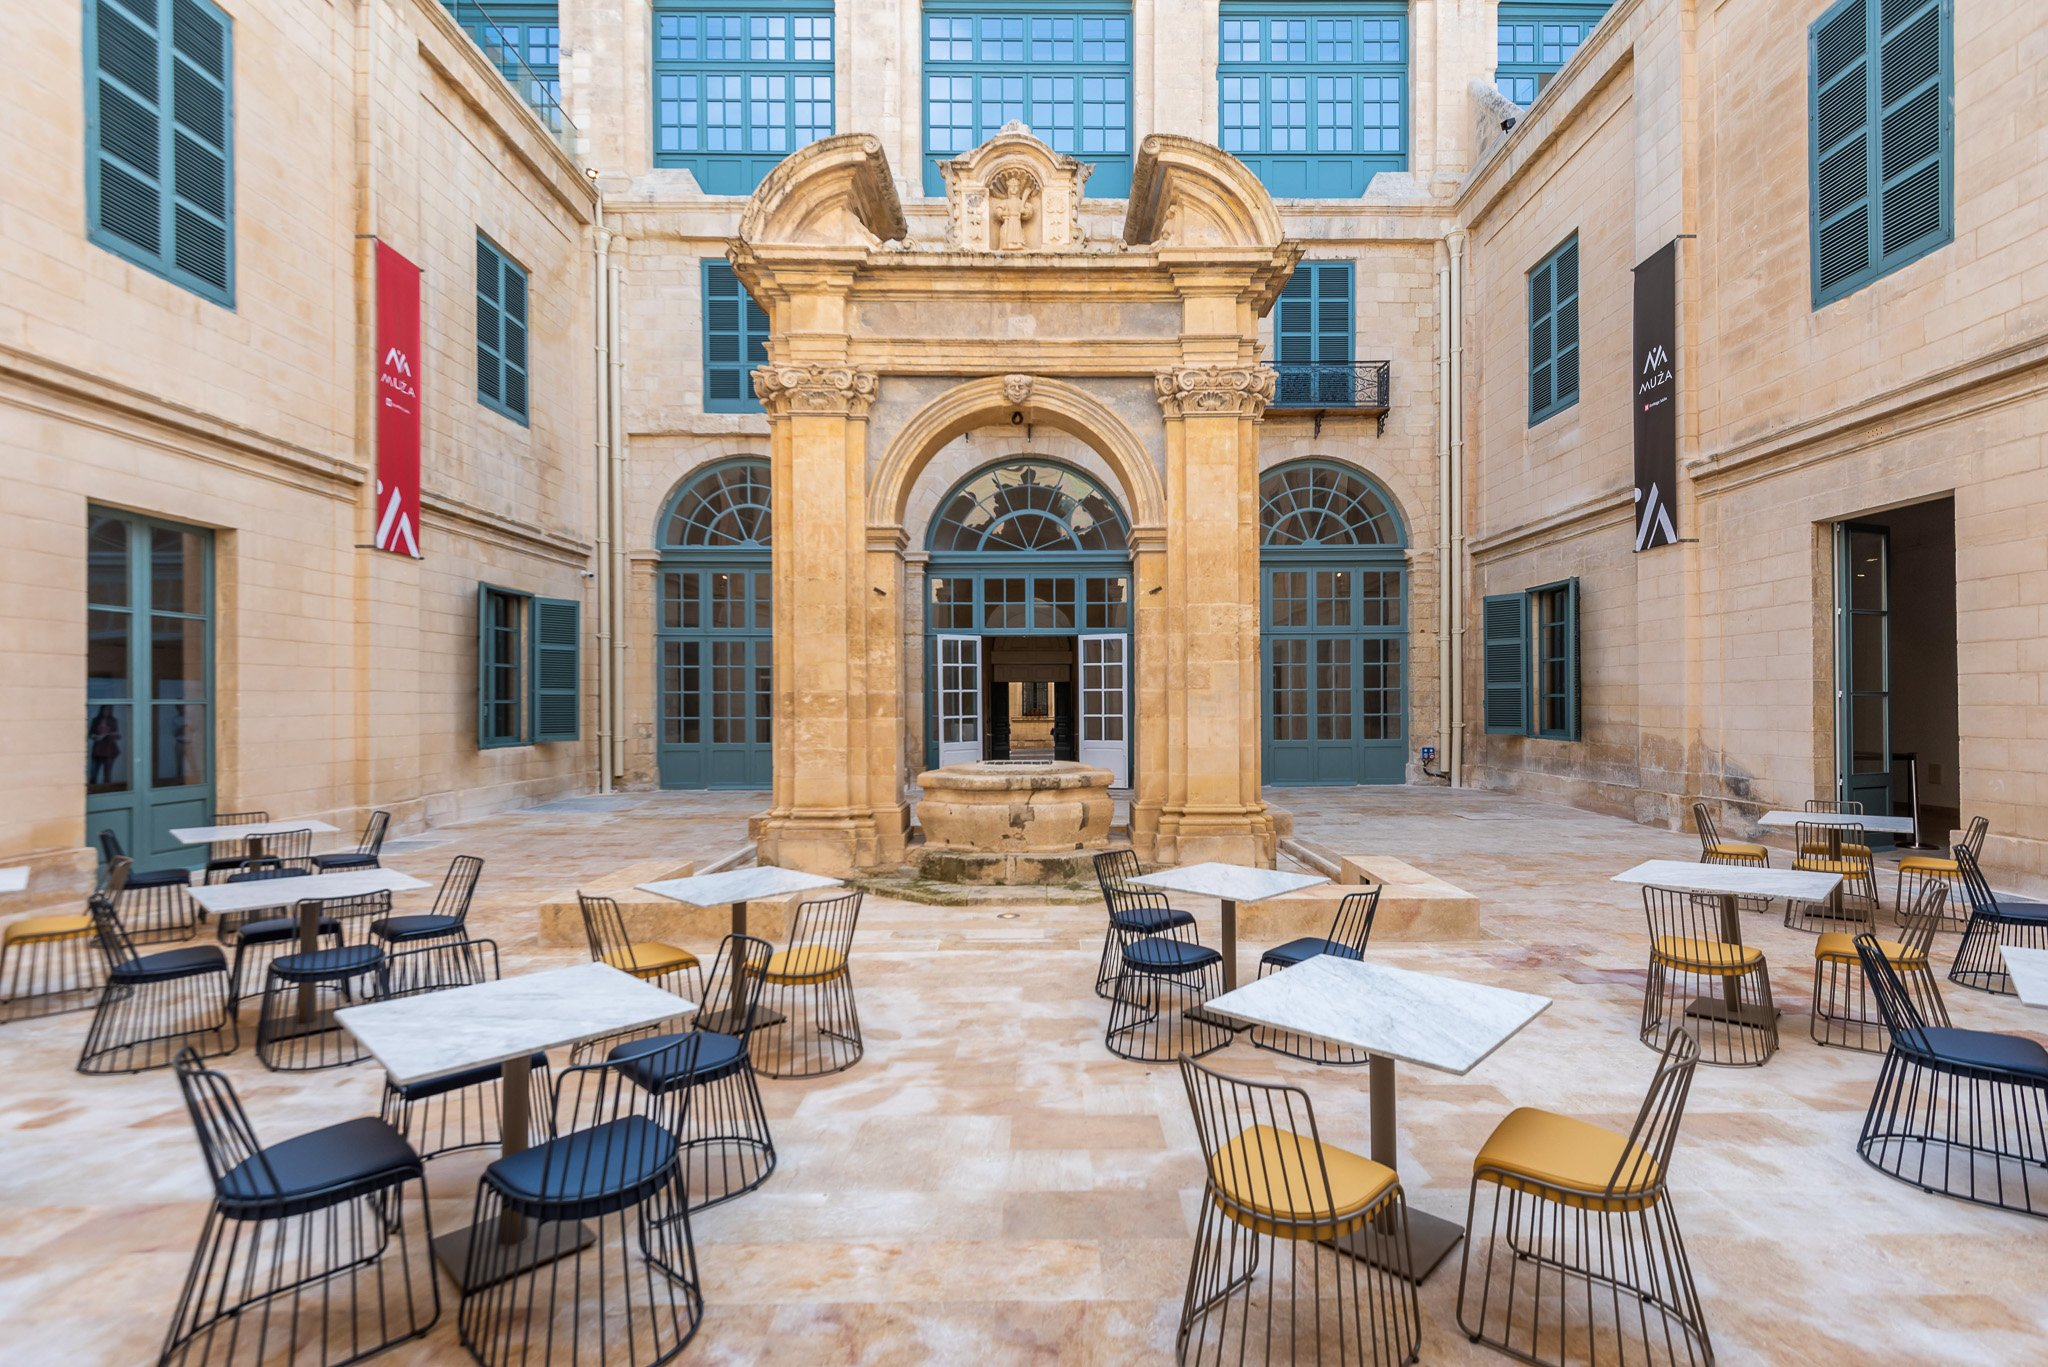 Real Estate and Architecture Photo. Yard at  MUZA in Valletta Malta. Cafe, Restaurant